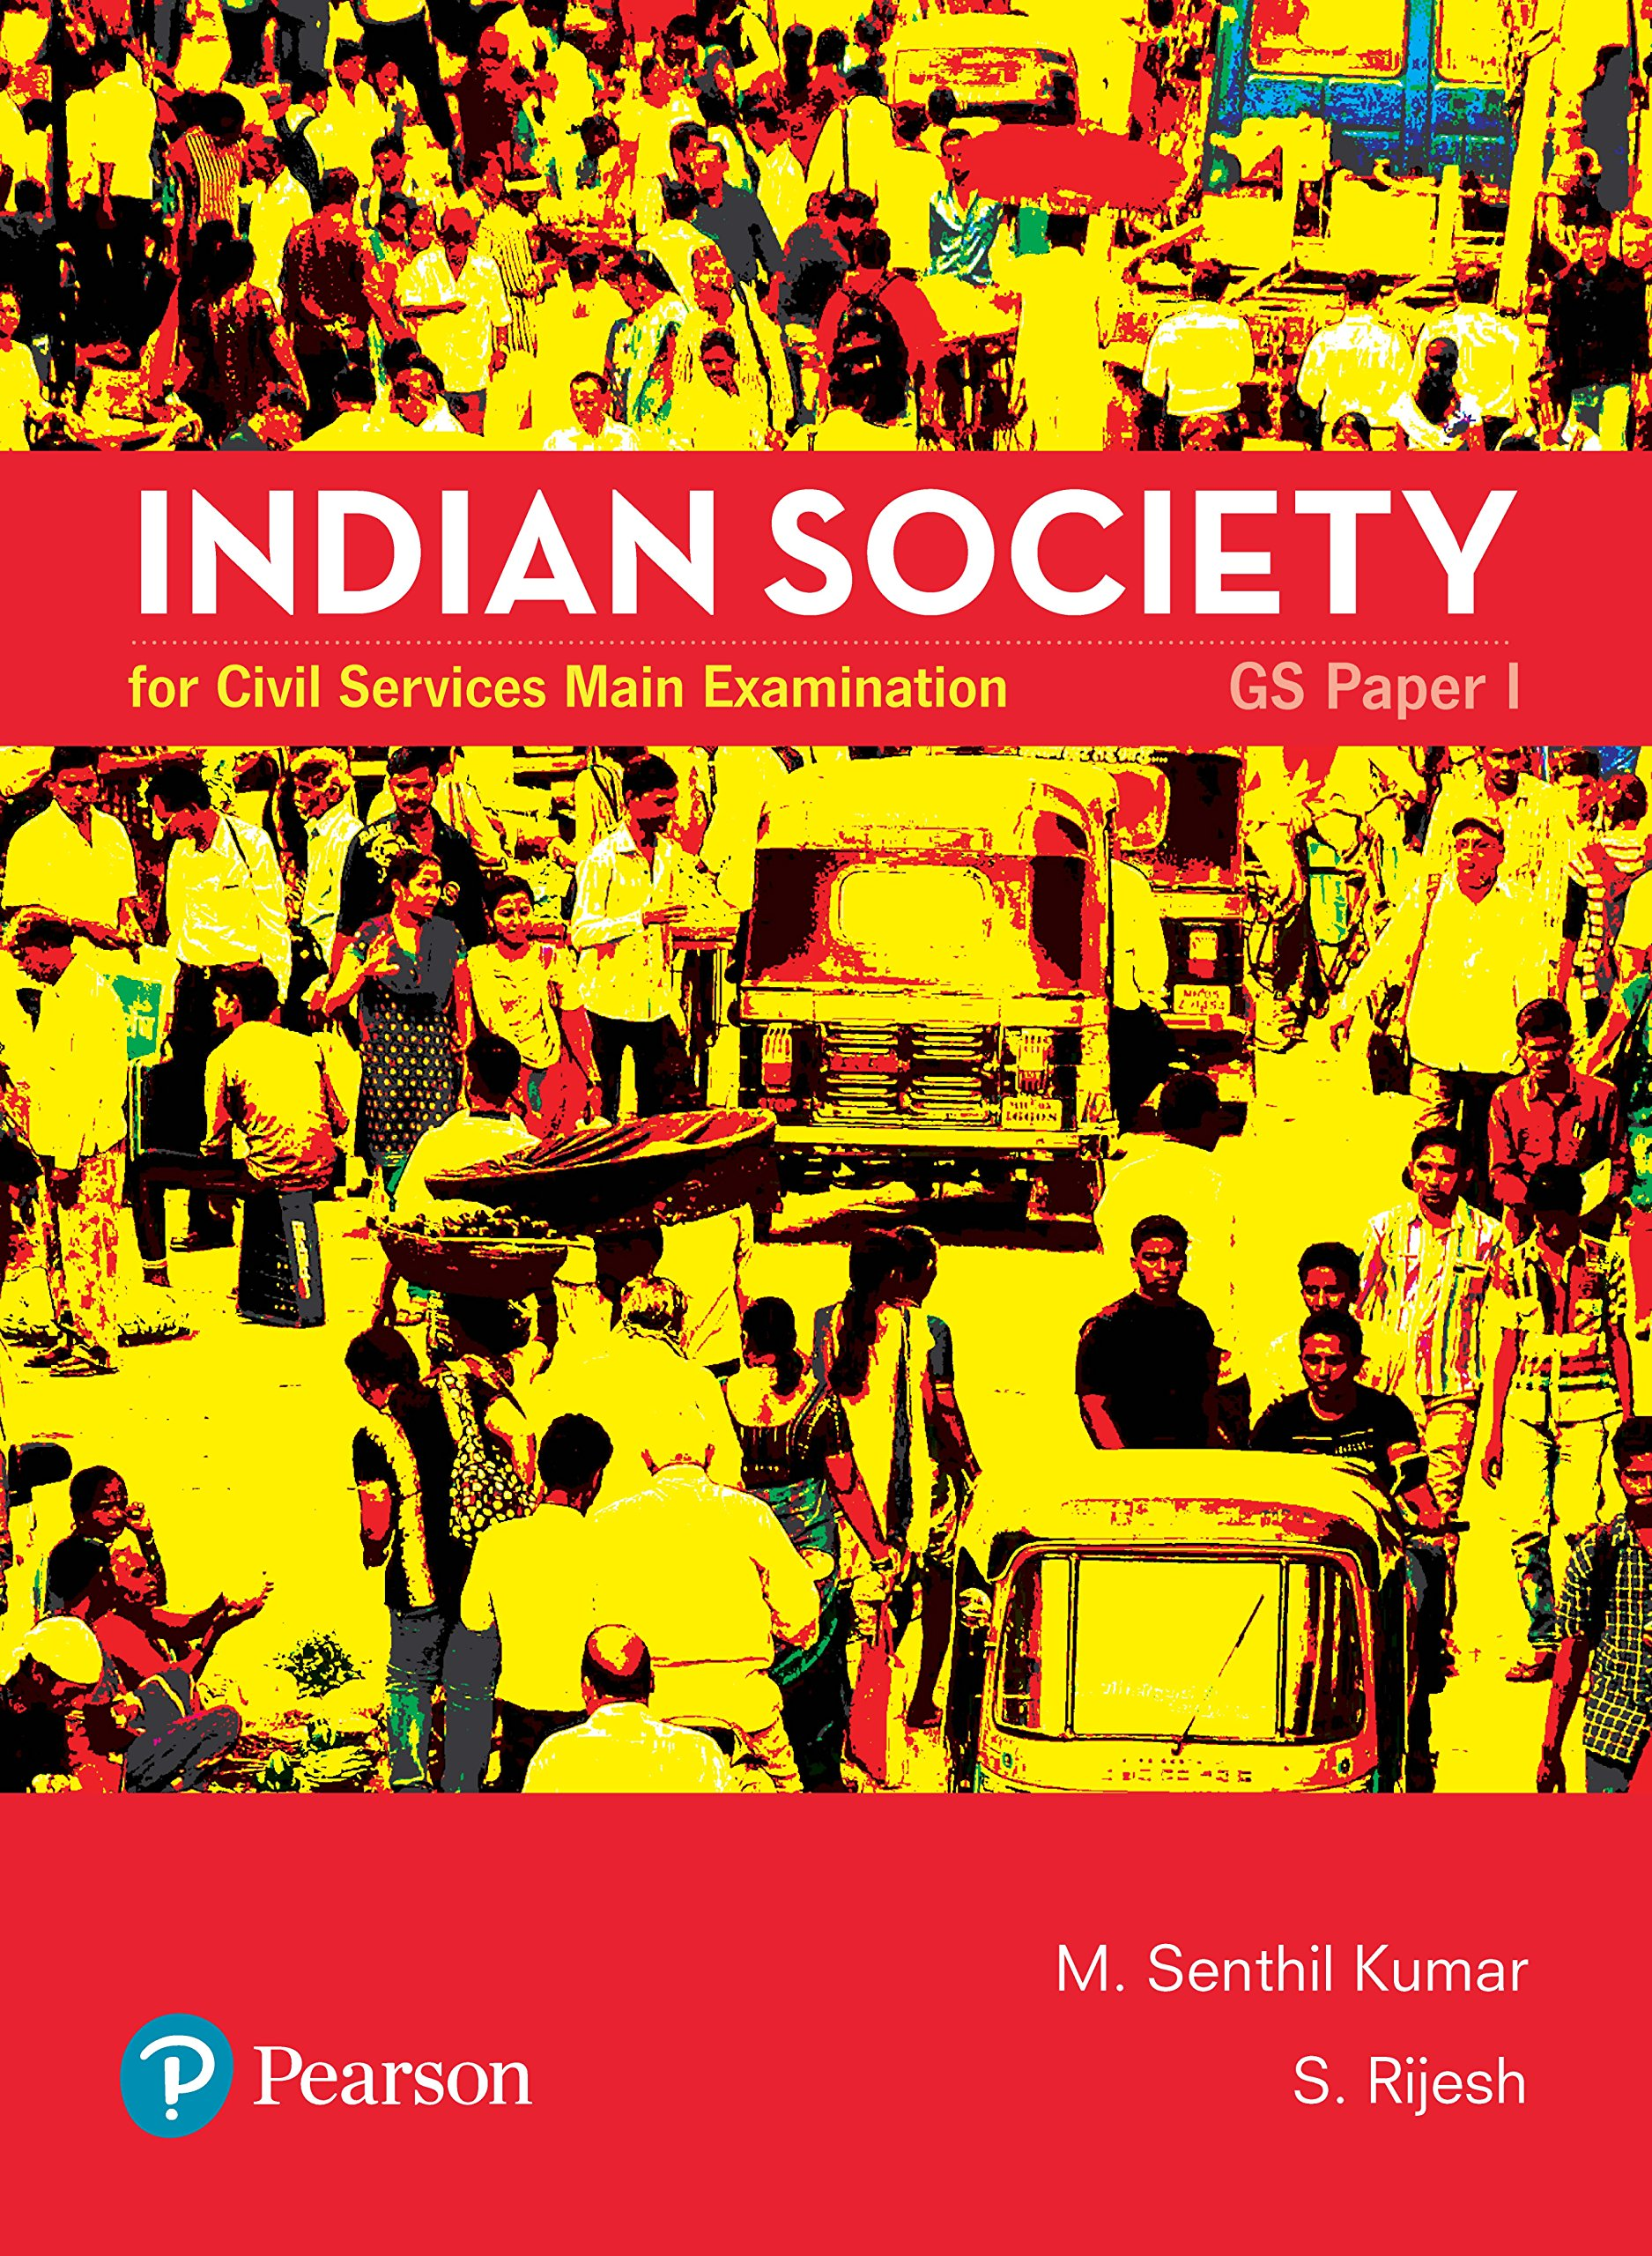 Buy Indian Society For Civil Services Main Examination GS Paper I